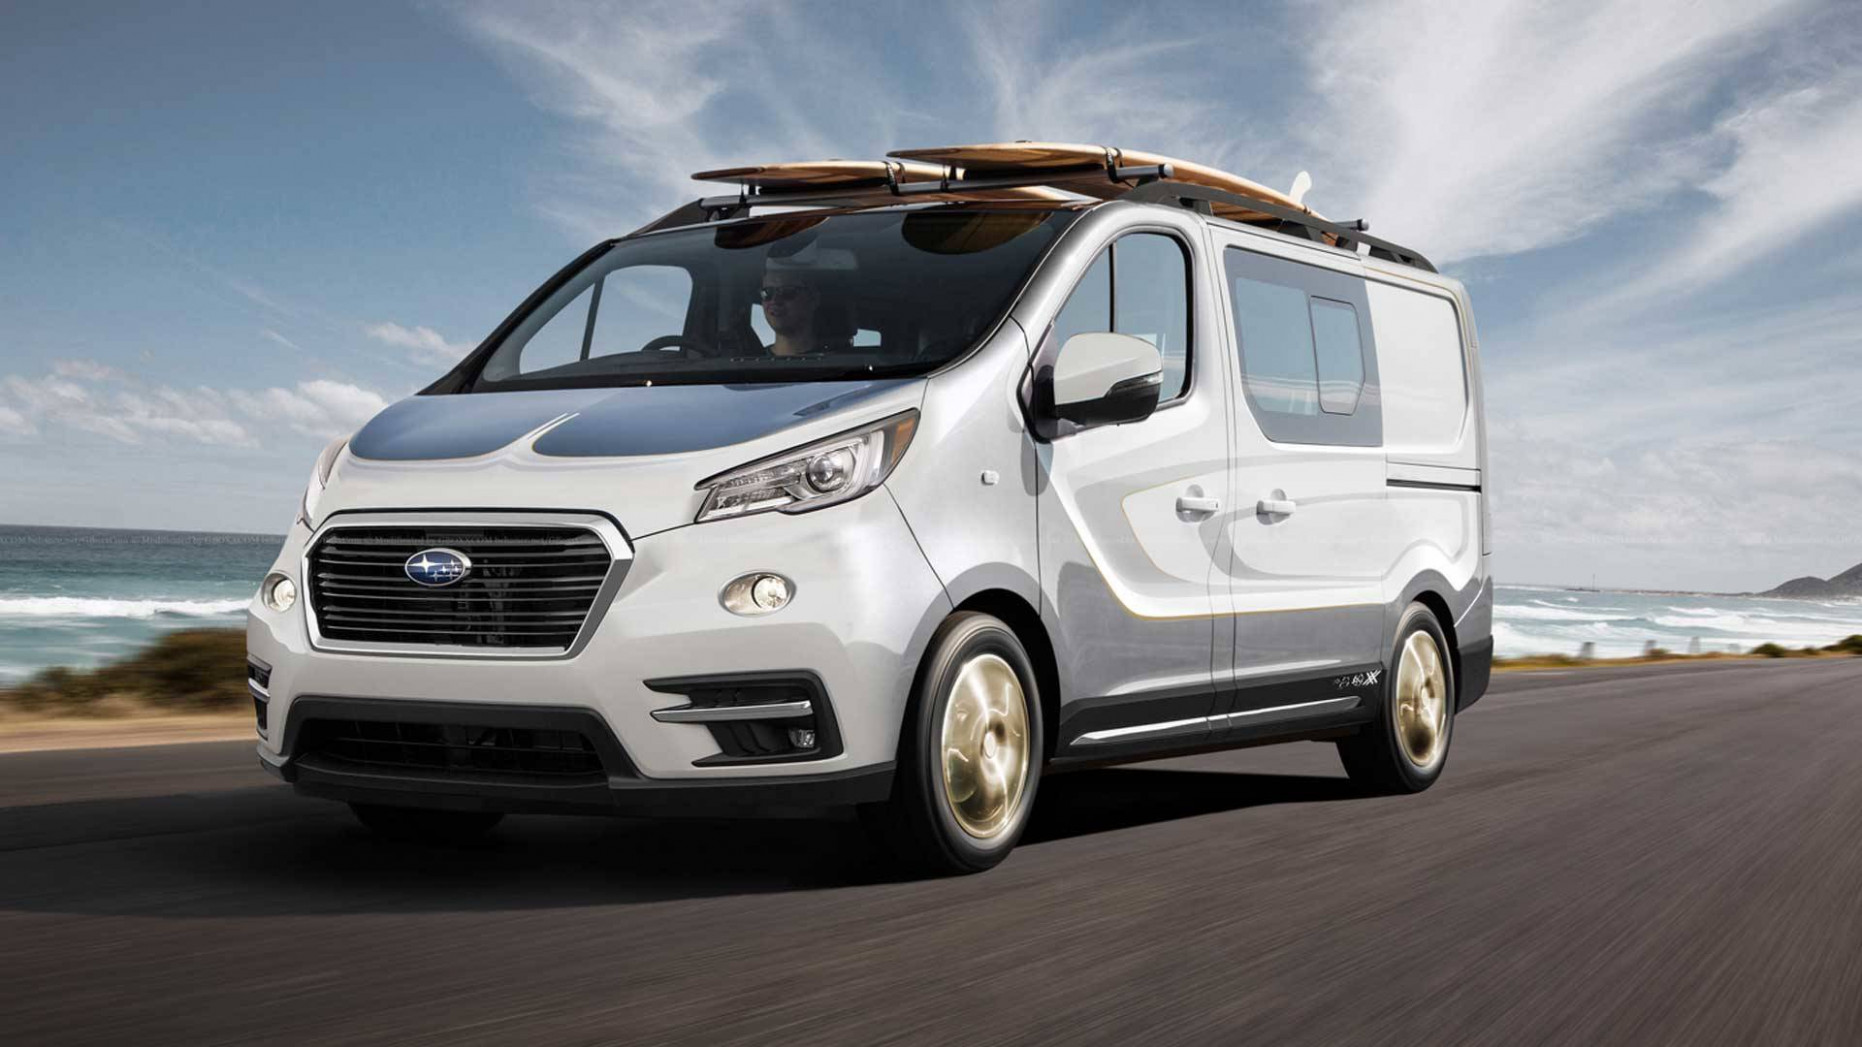 What If BMW, Alfa Romeo, And Subaru Sold Full-Size Vans? [UPDATE]